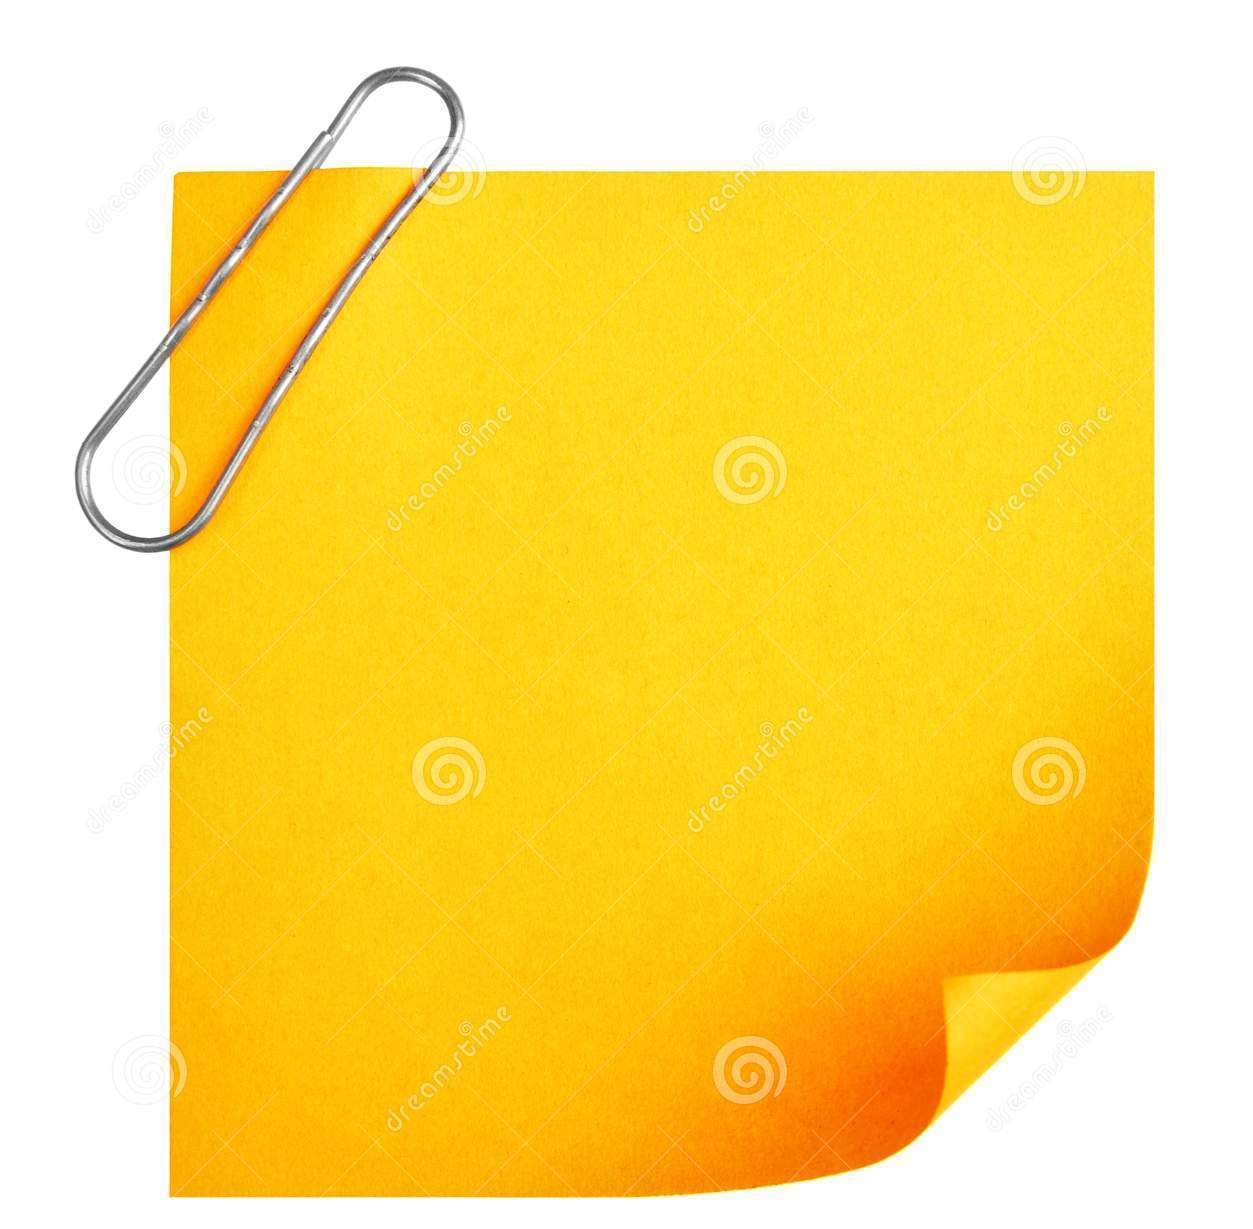 http://www.dreamstime.com/stock-images-blank-paper-clip-image10013634